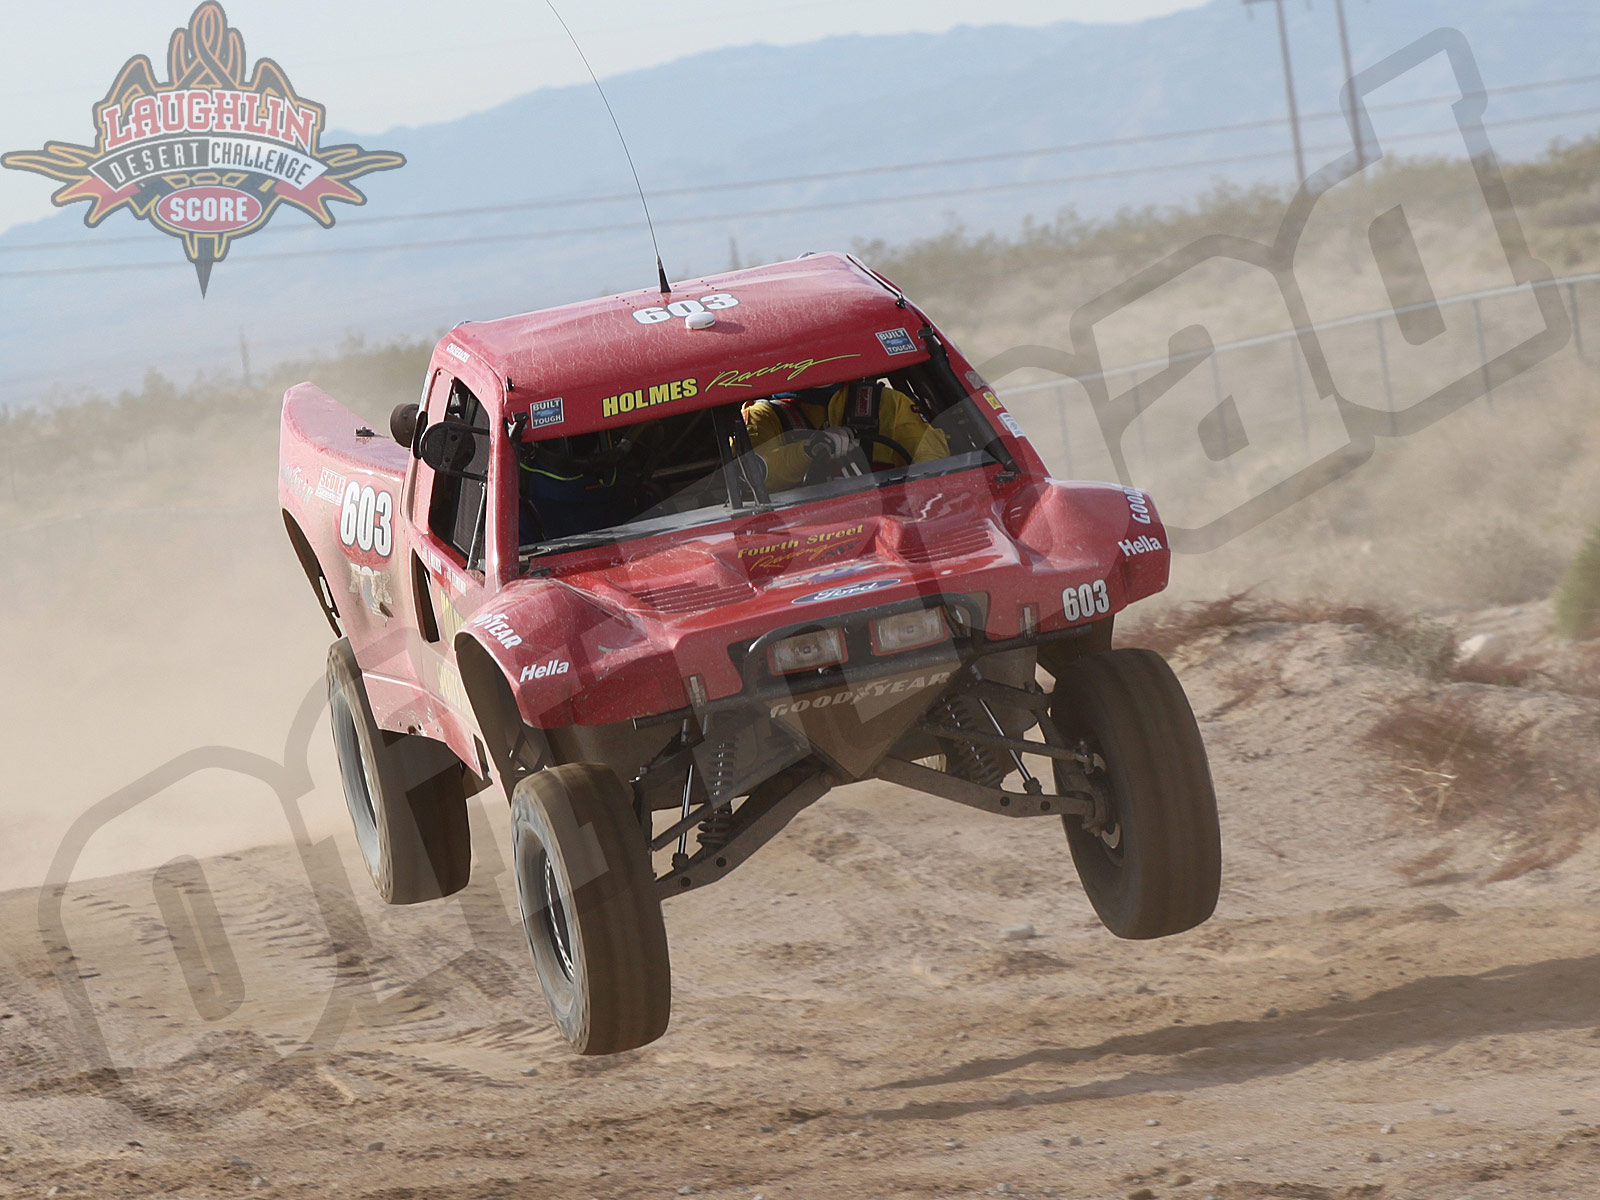 012011or 6598+2011 score laughlin desert challenge+truck classes